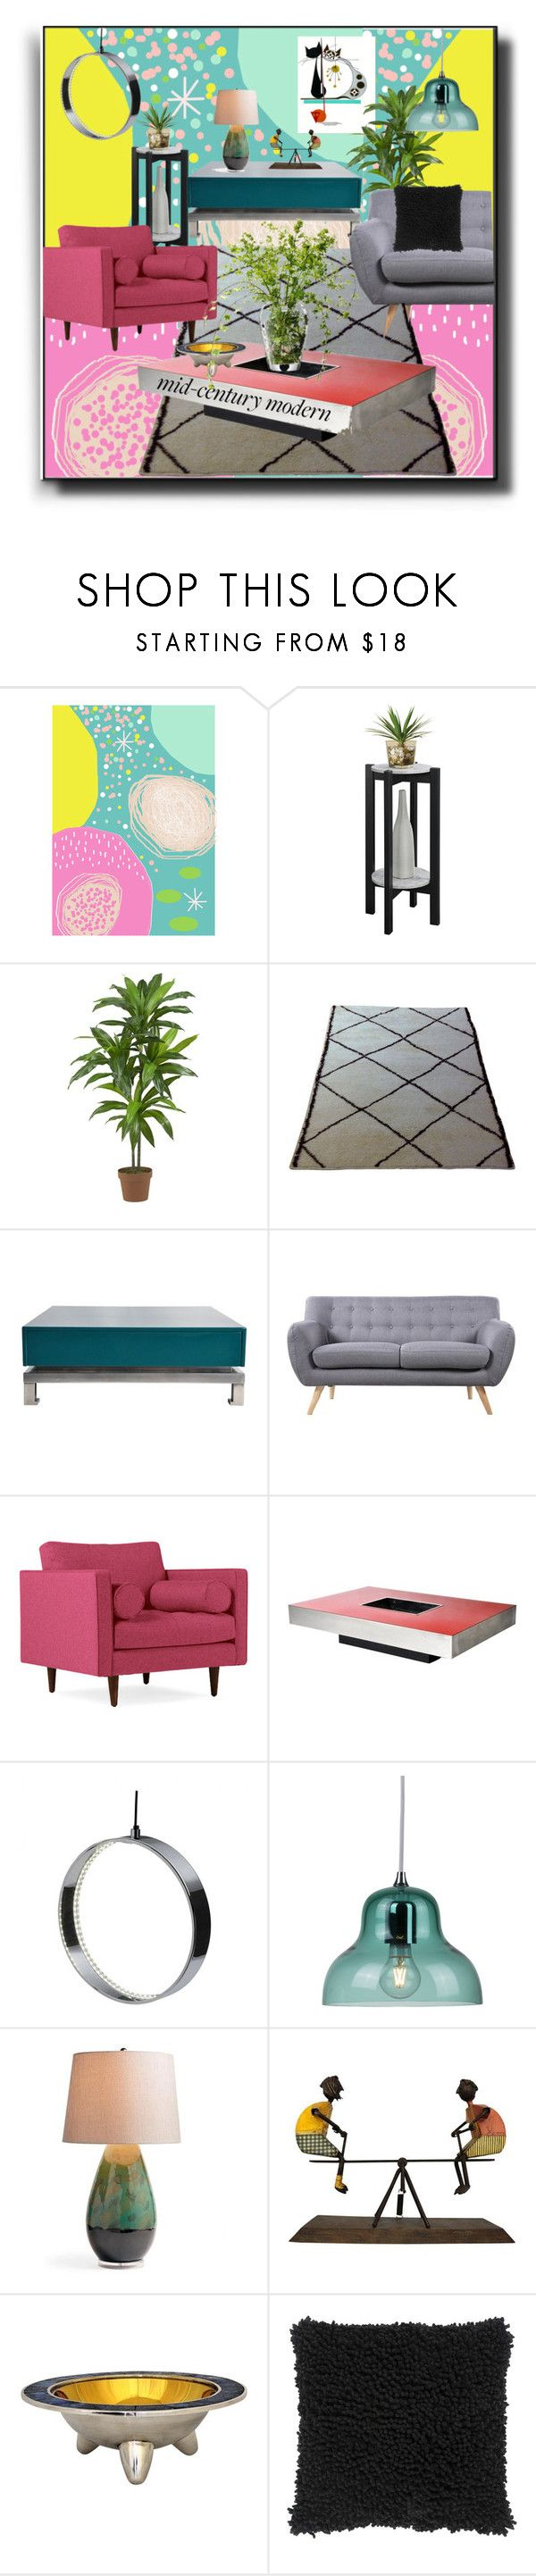 """""""Modern Home"""" by kelly-floramoon-legg ❤ liked on Polyvore featuring interior, interiors, interior design, home, home decor, interior decorating, Convenience Concepts, Nearly Natural, Maison Jansen and Madison"""